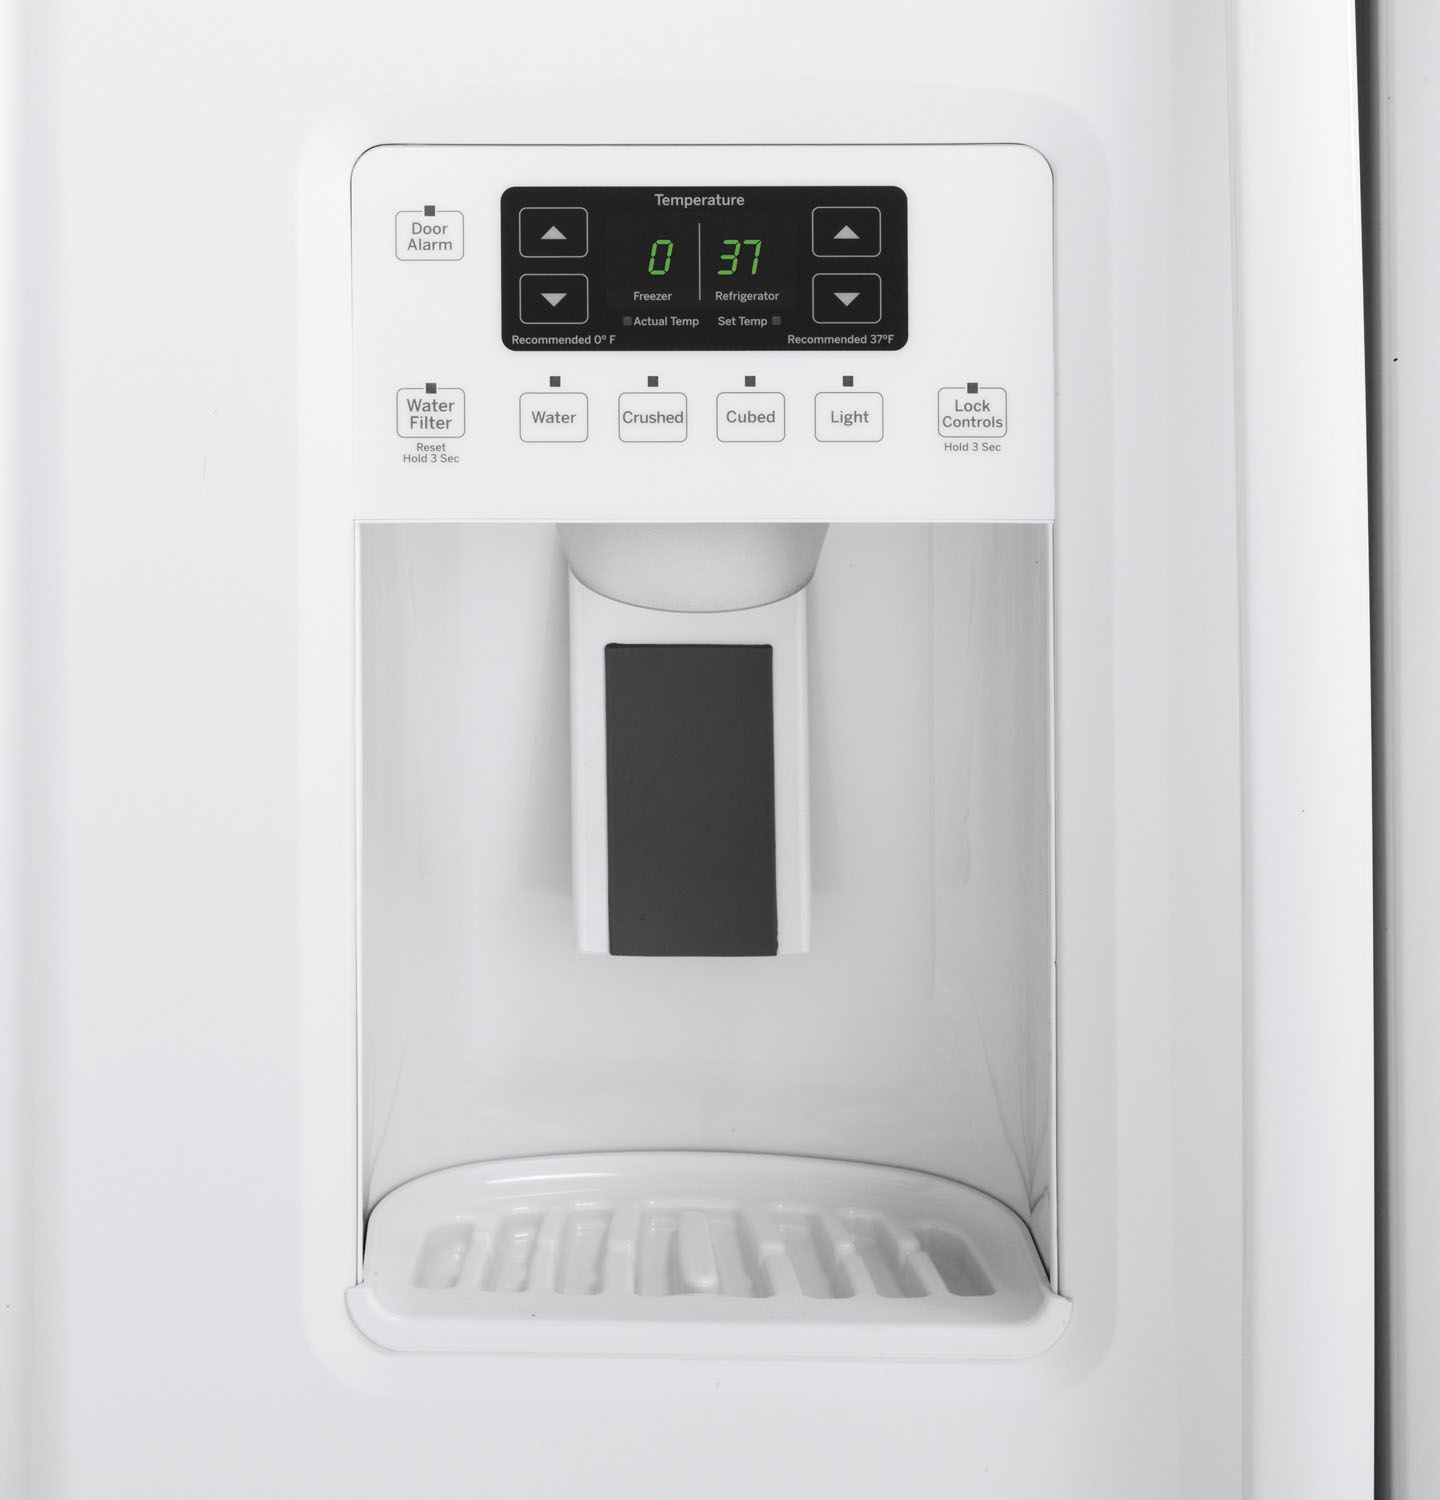 Ge 30 inch side by side white refrigerator - Main Image 1 2 3 4 5